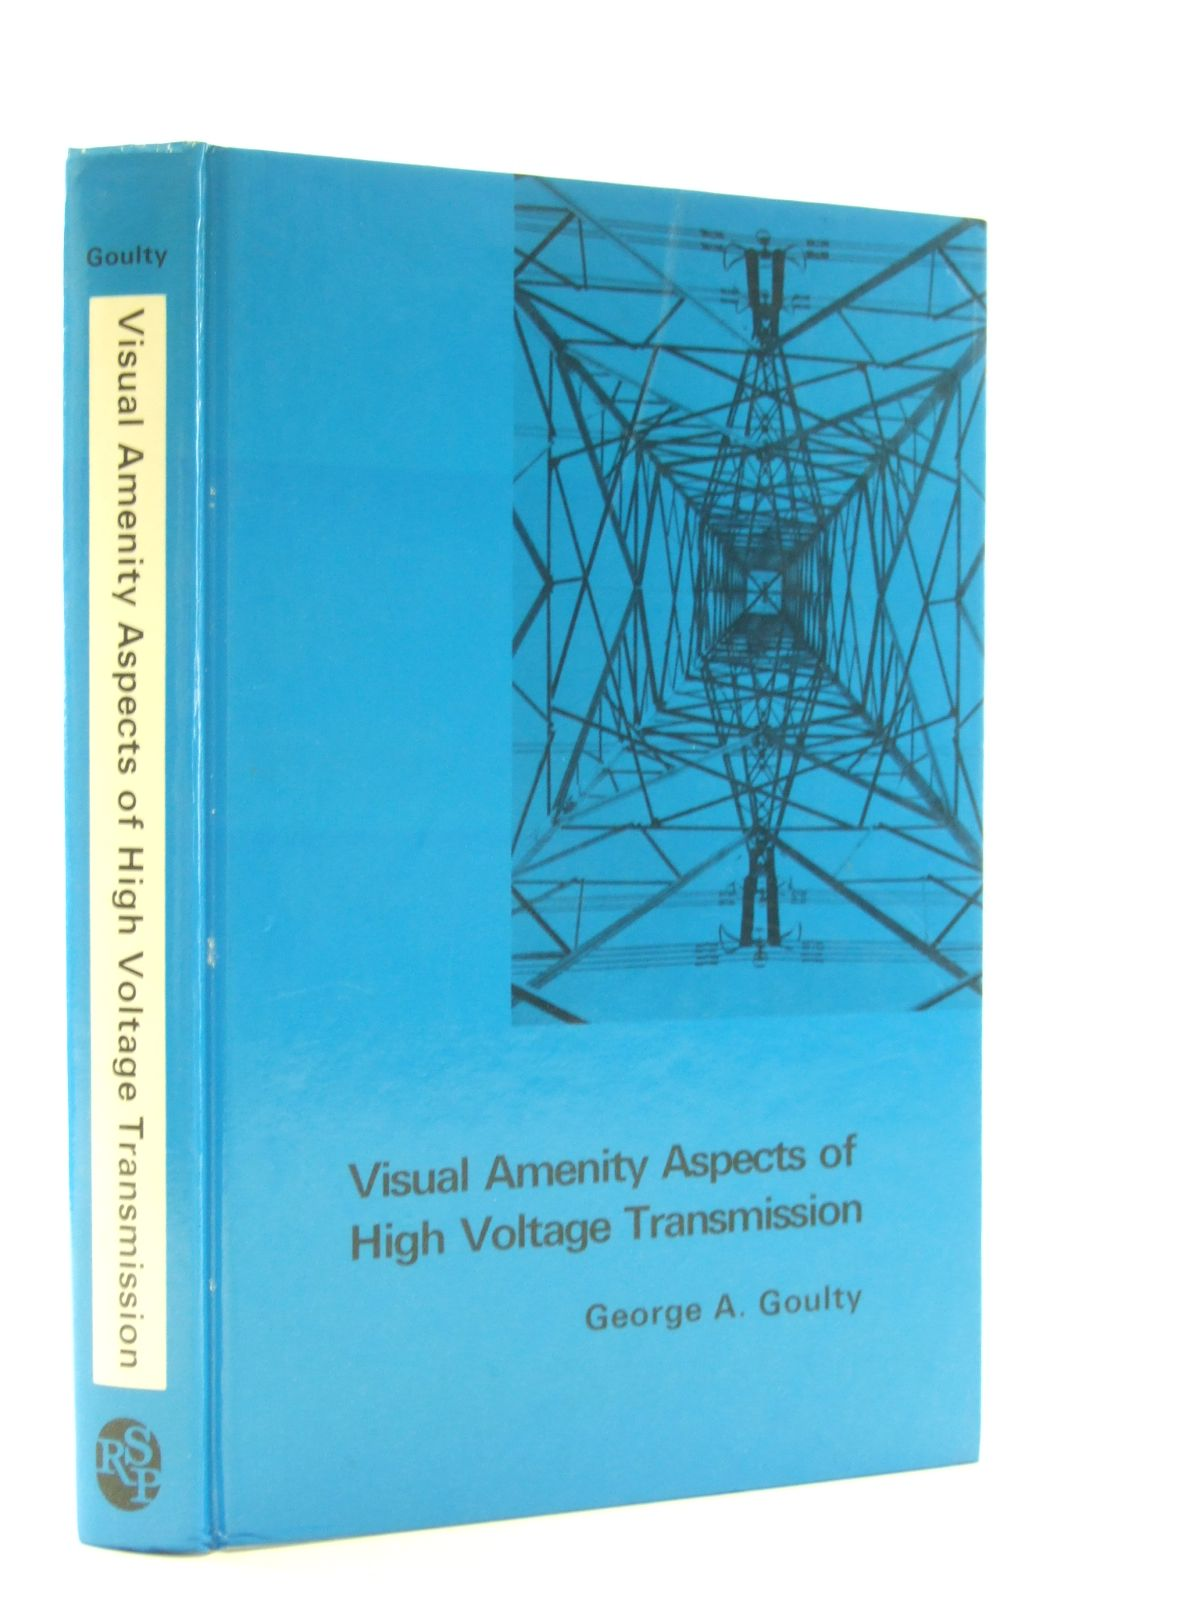 Photo of VISUAL AMENITY ASPECTS OF HIGH VOLTAGE TRANSMISSION written by Goulty, George A. published by Research Studies Press (STOCK CODE: 1207230)  for sale by Stella & Rose's Books